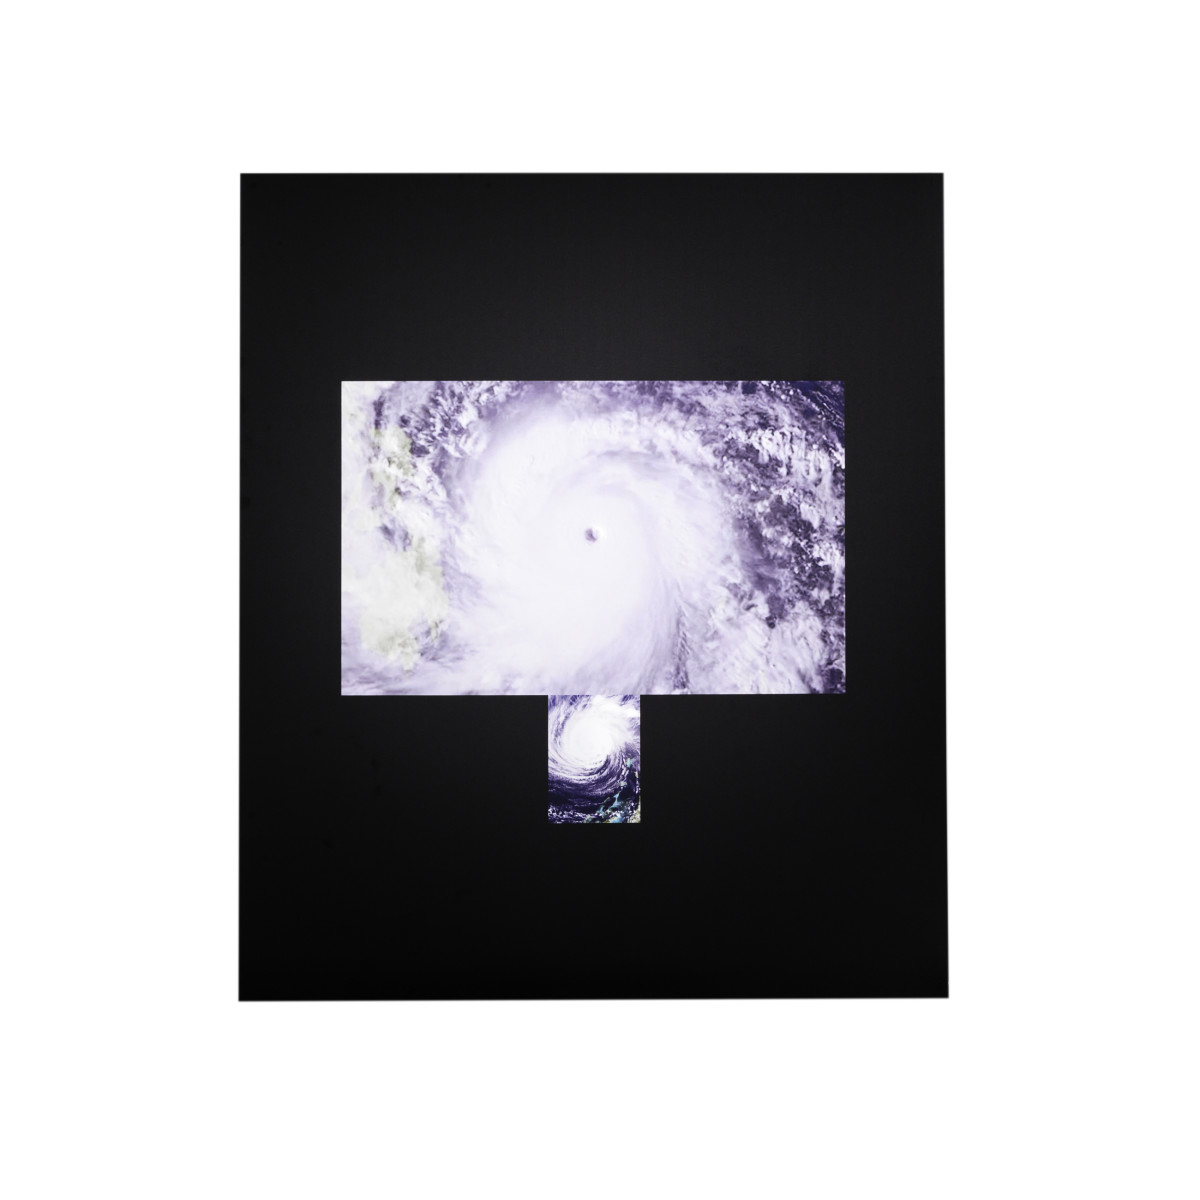 Untitled (Climate data18) #1 of 2